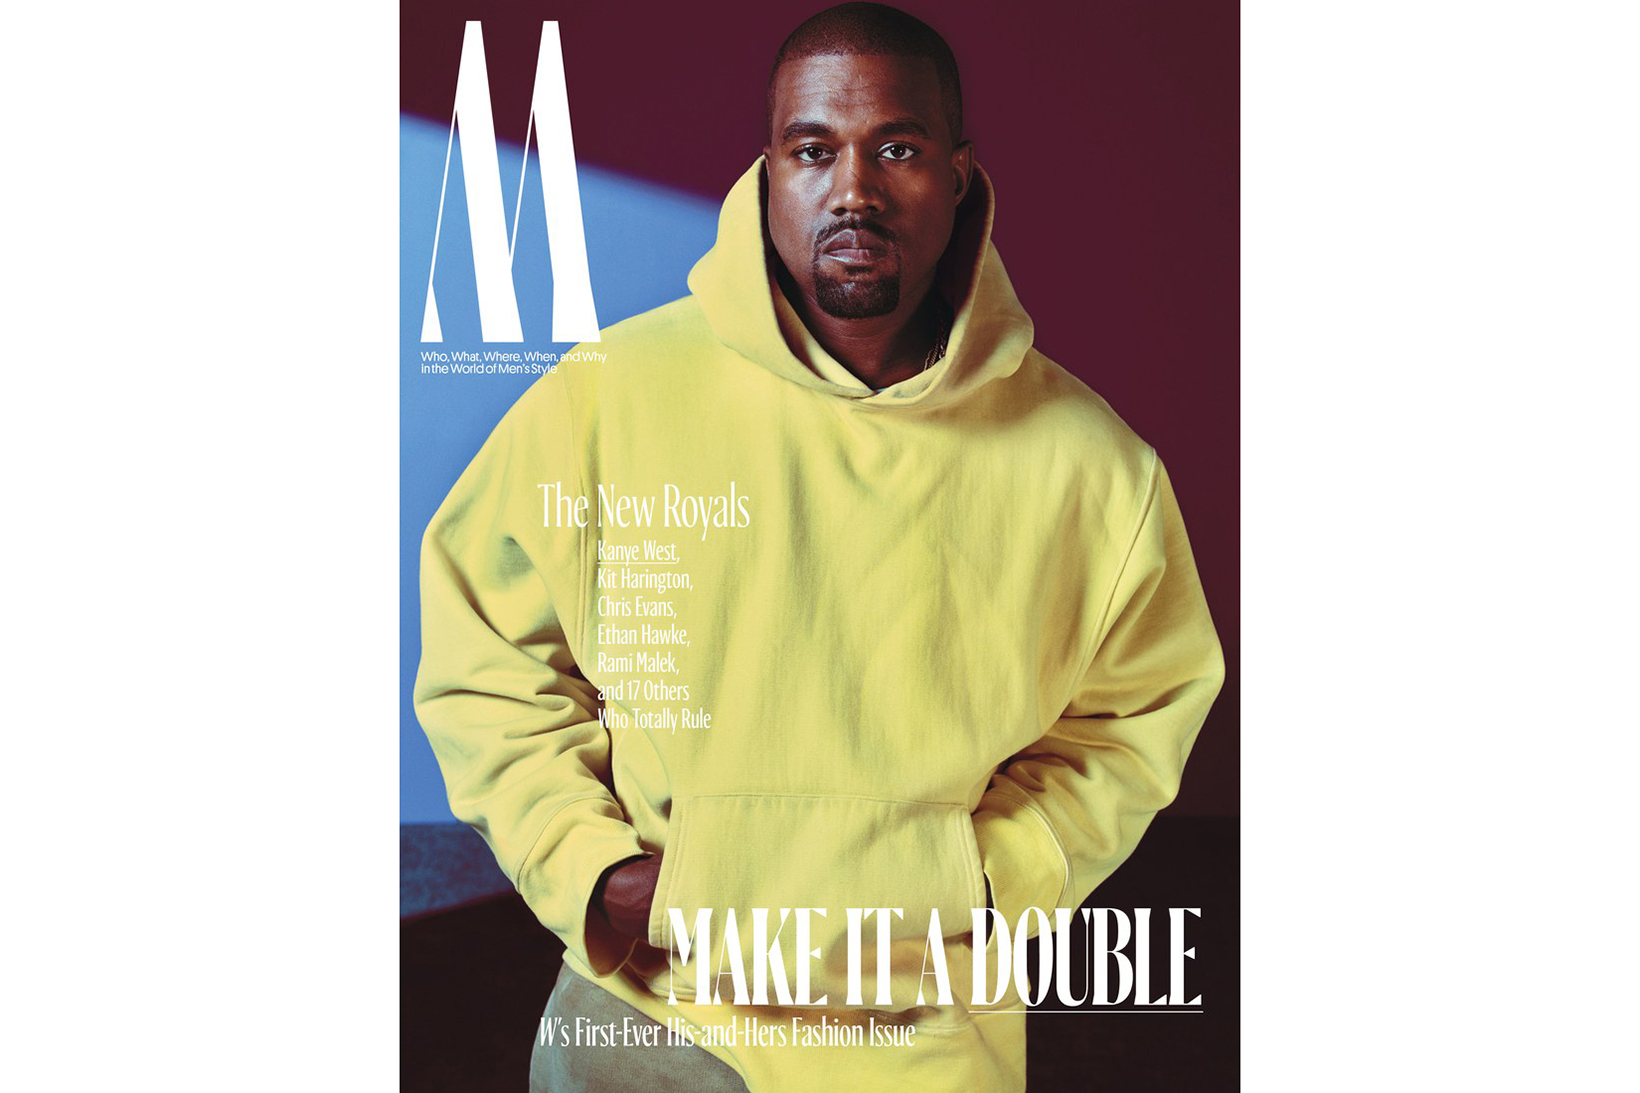 Kanye West, Halle Berry, Rami Malek and More Crowned 2016 Royalty by 'W Magazine'